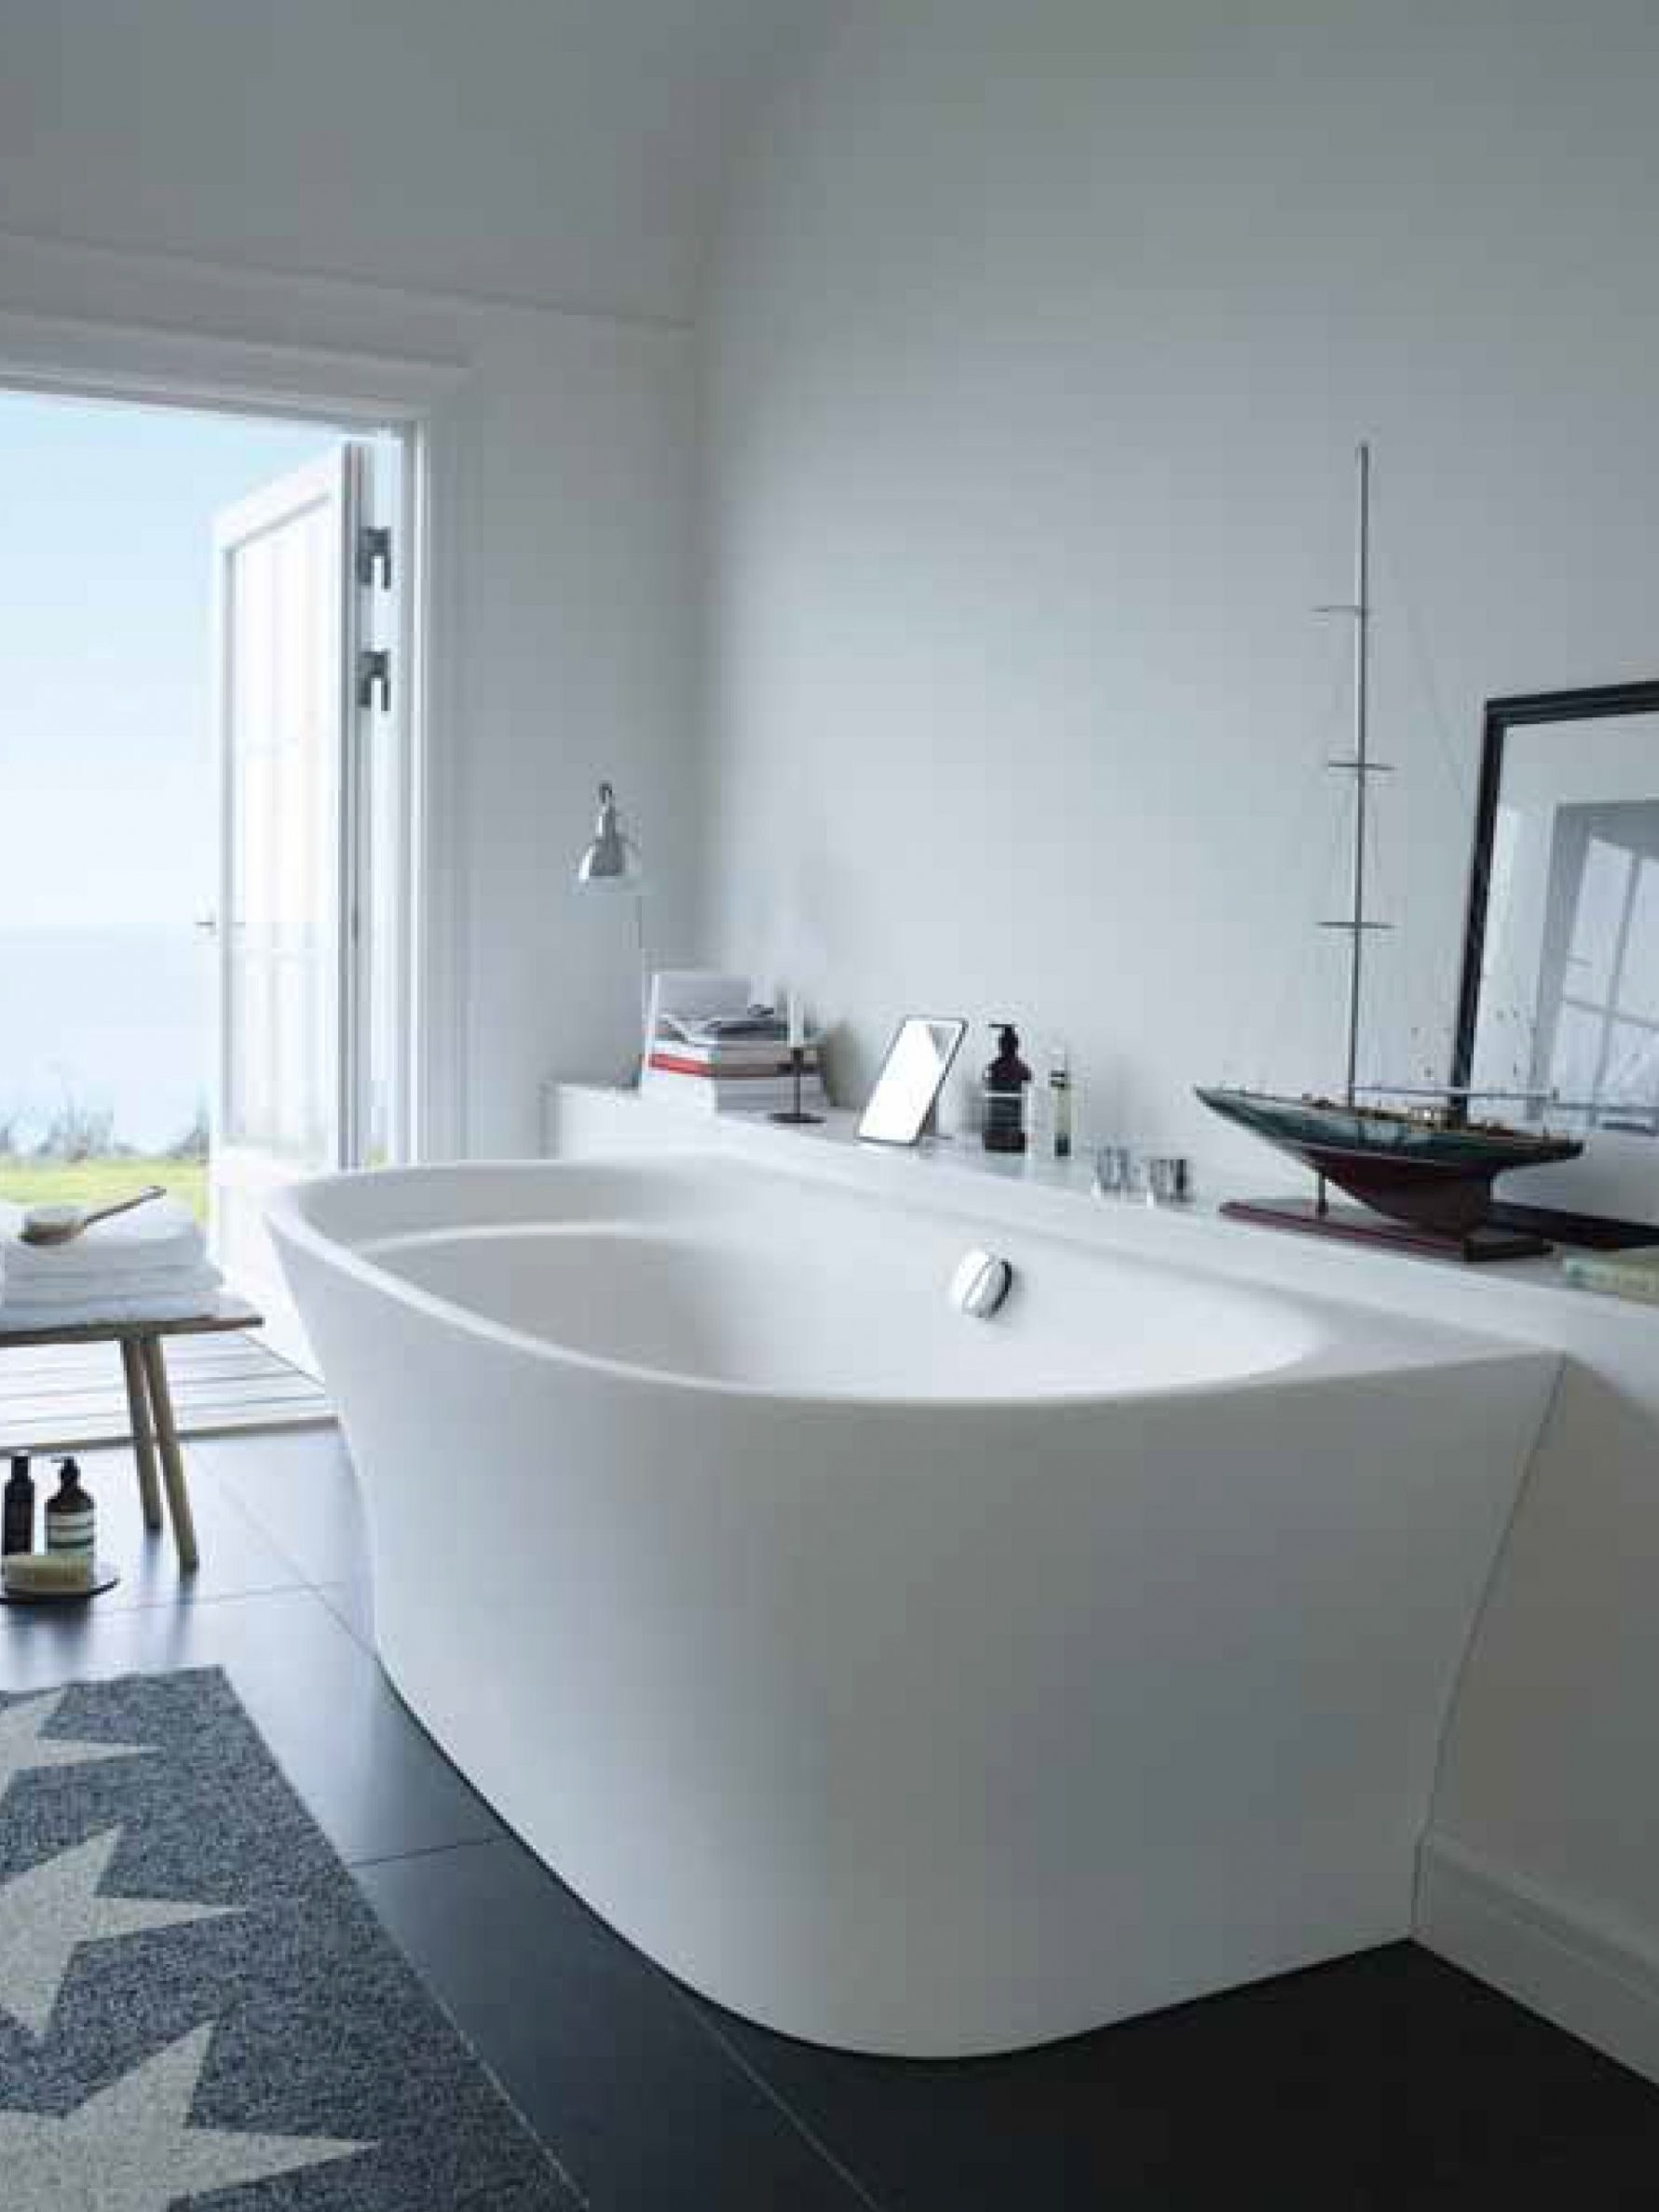 Duravit Cape Cod Back Towall Version 700364  D U R A V I T von Duravit Cape Cod Badewanne Freistehend Photo